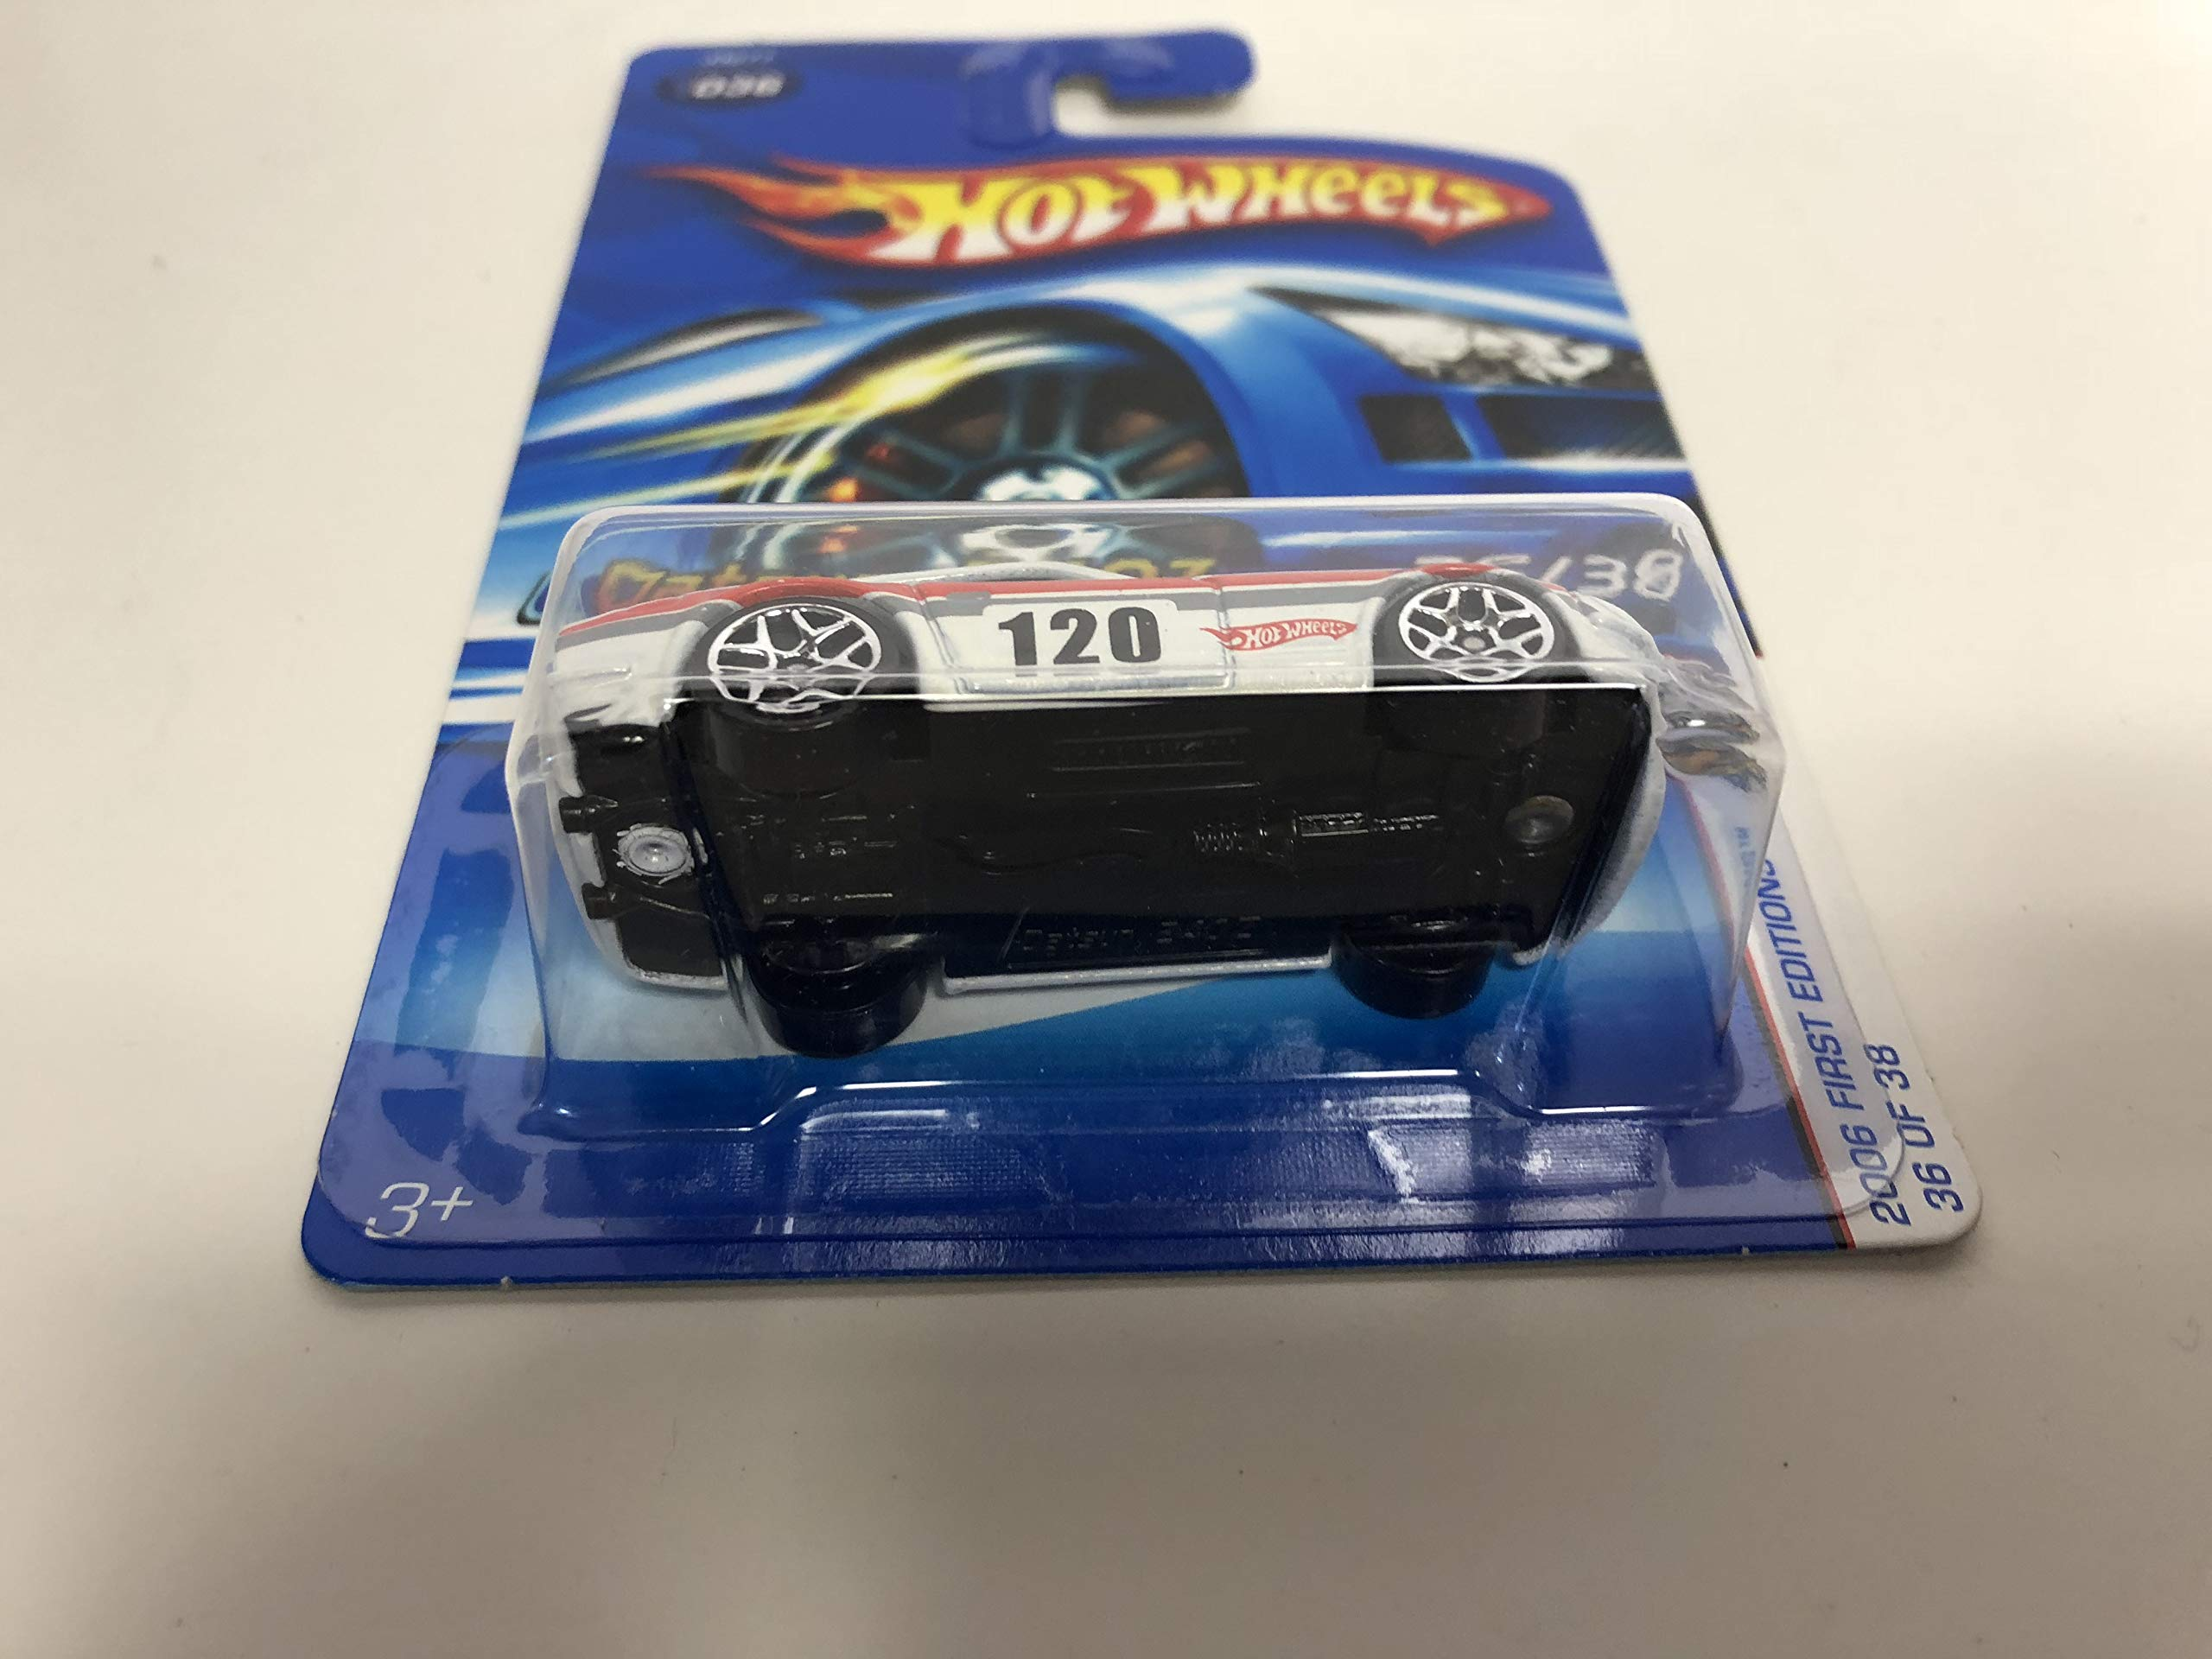 Datsun 240Z No. 036 Hot Wheels 2006 First Edition 1/64 scale diecast car